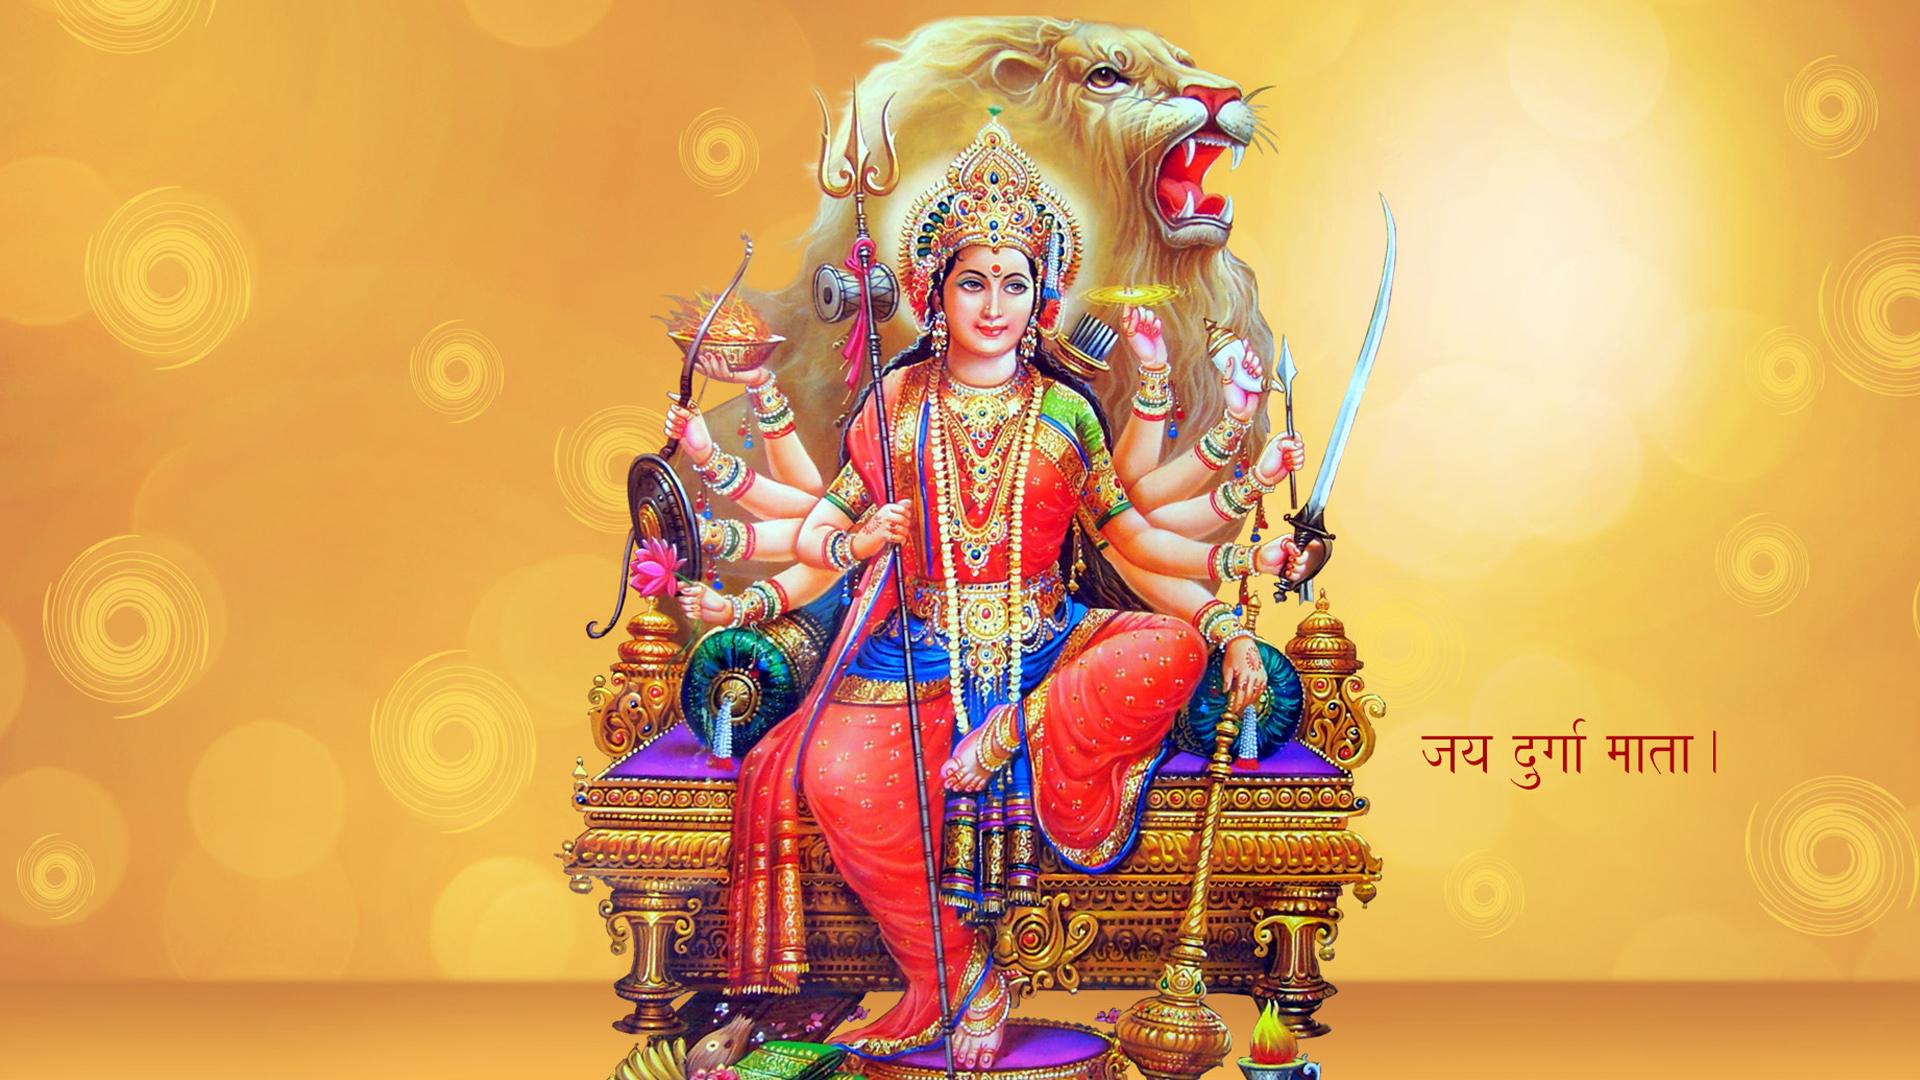 Durga images wallpaper hd — 1